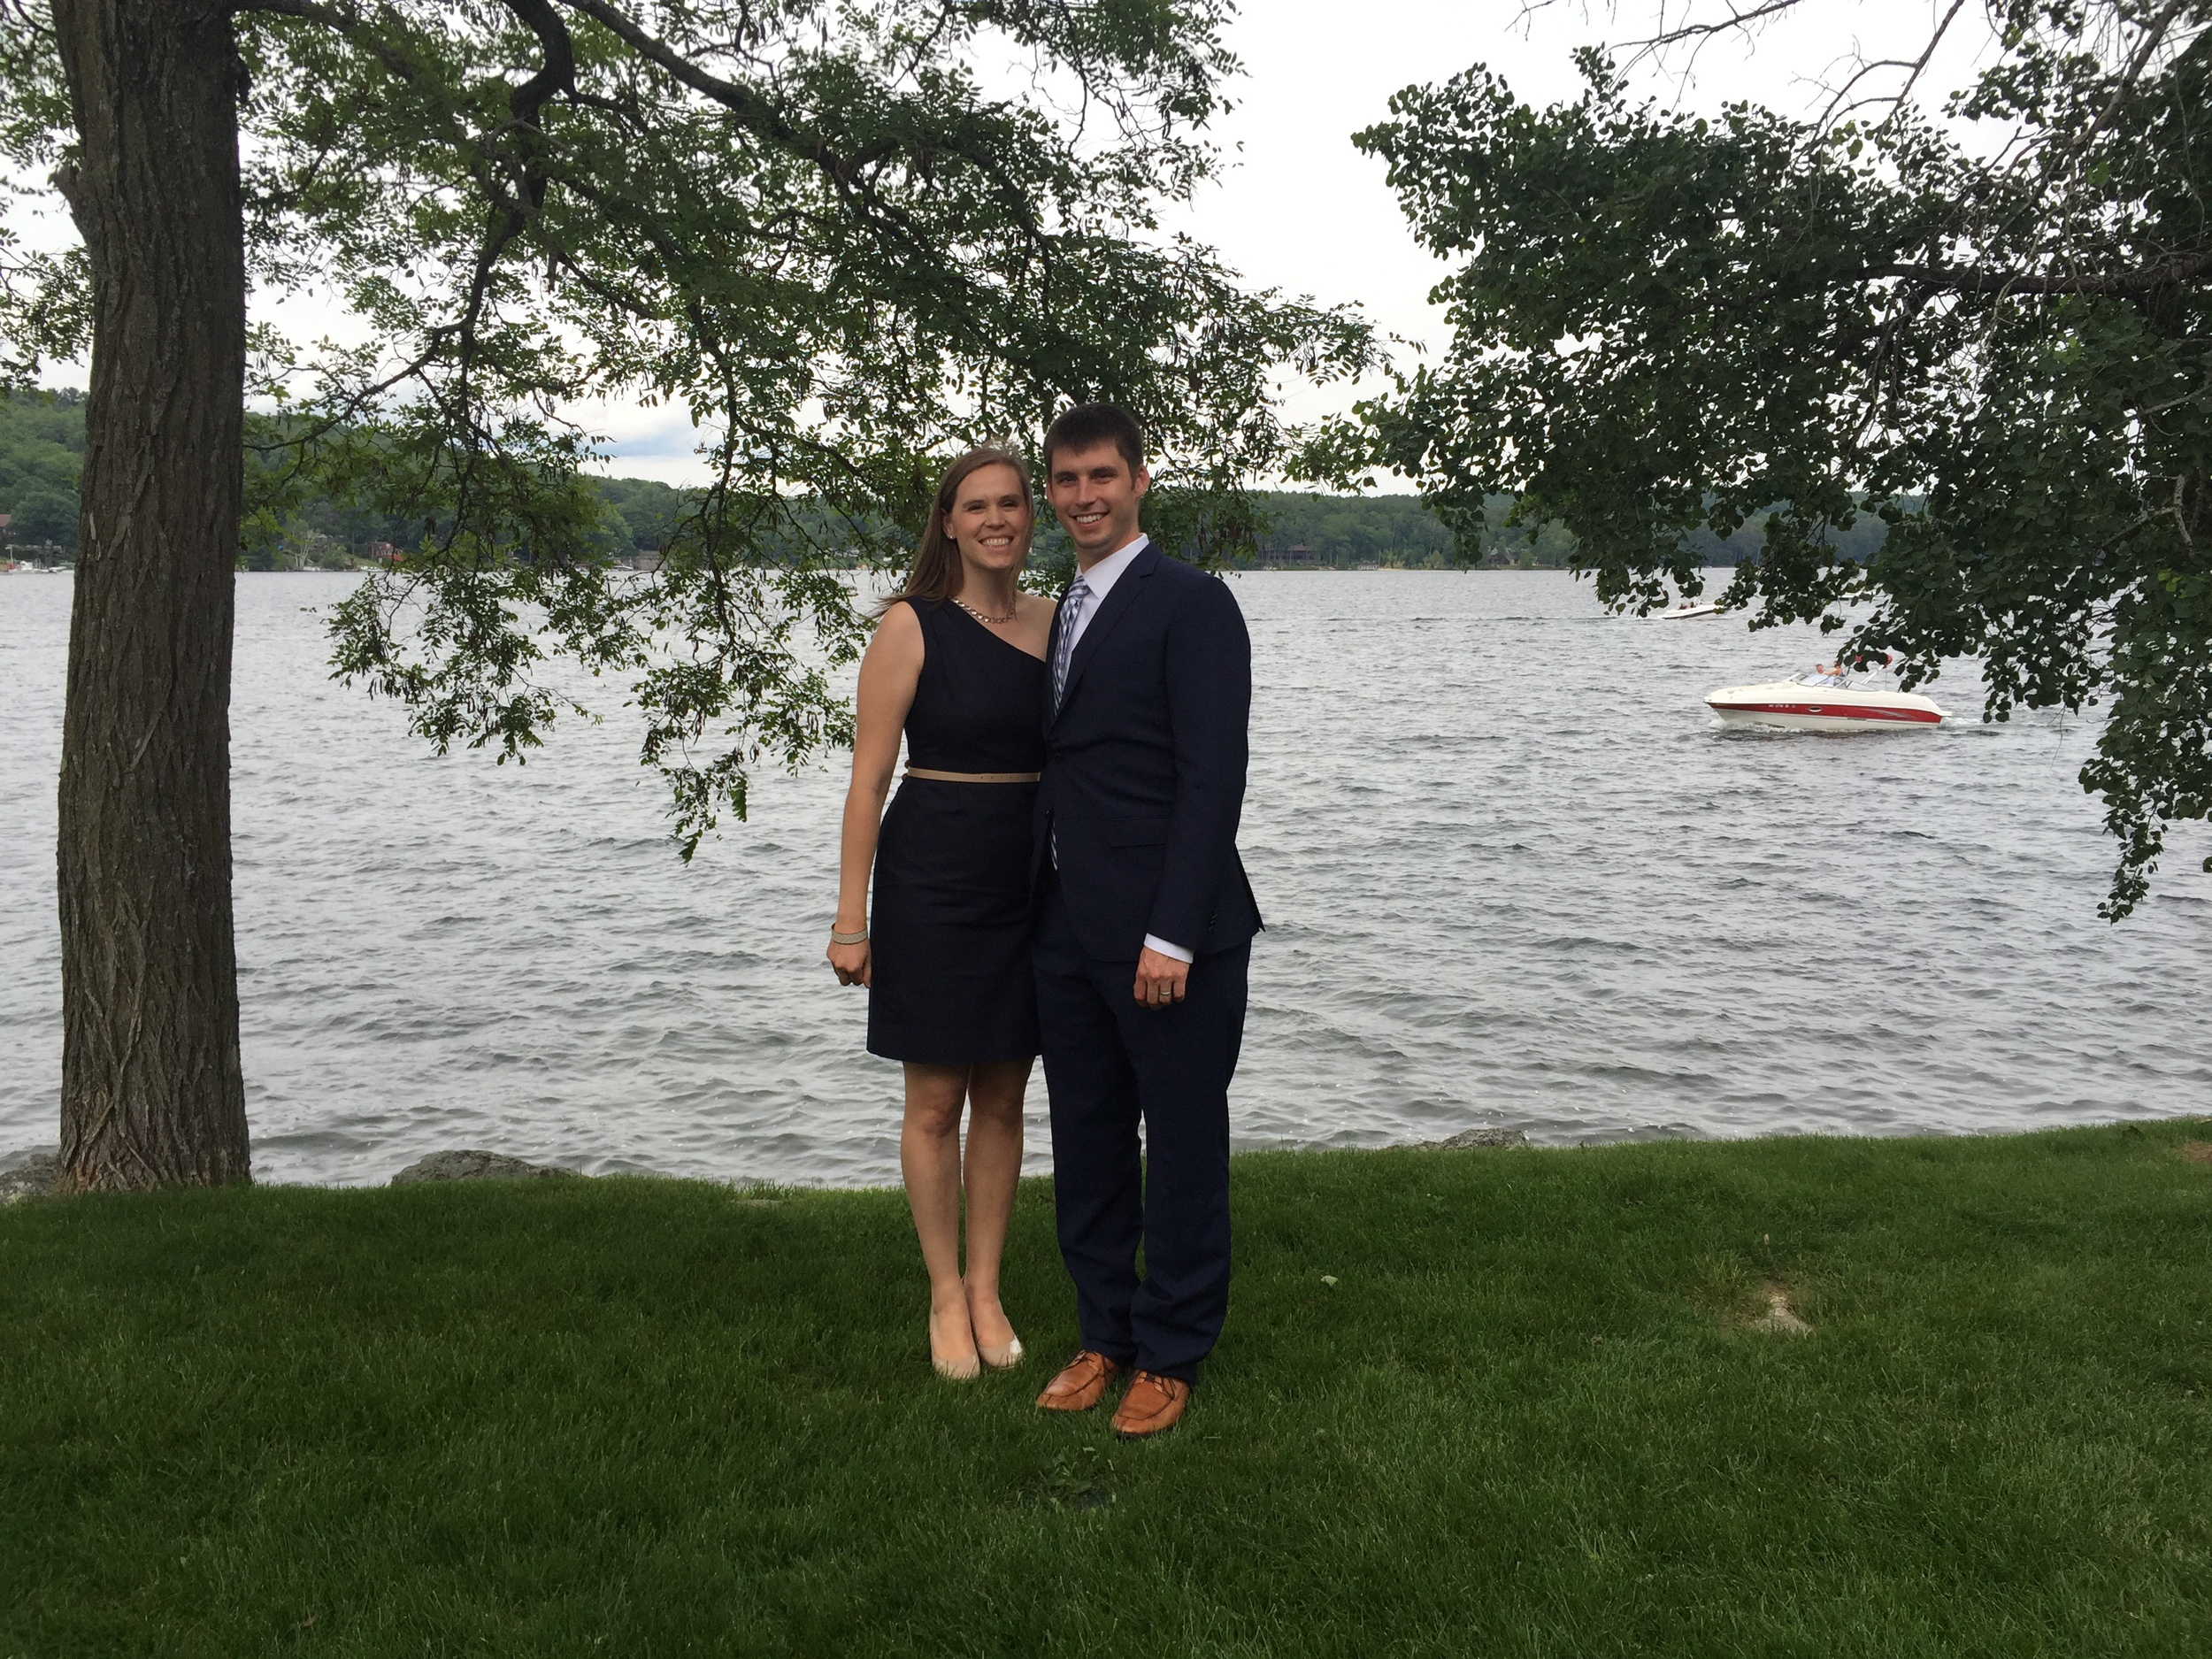 New Hampshire wedding - June 27, 2015